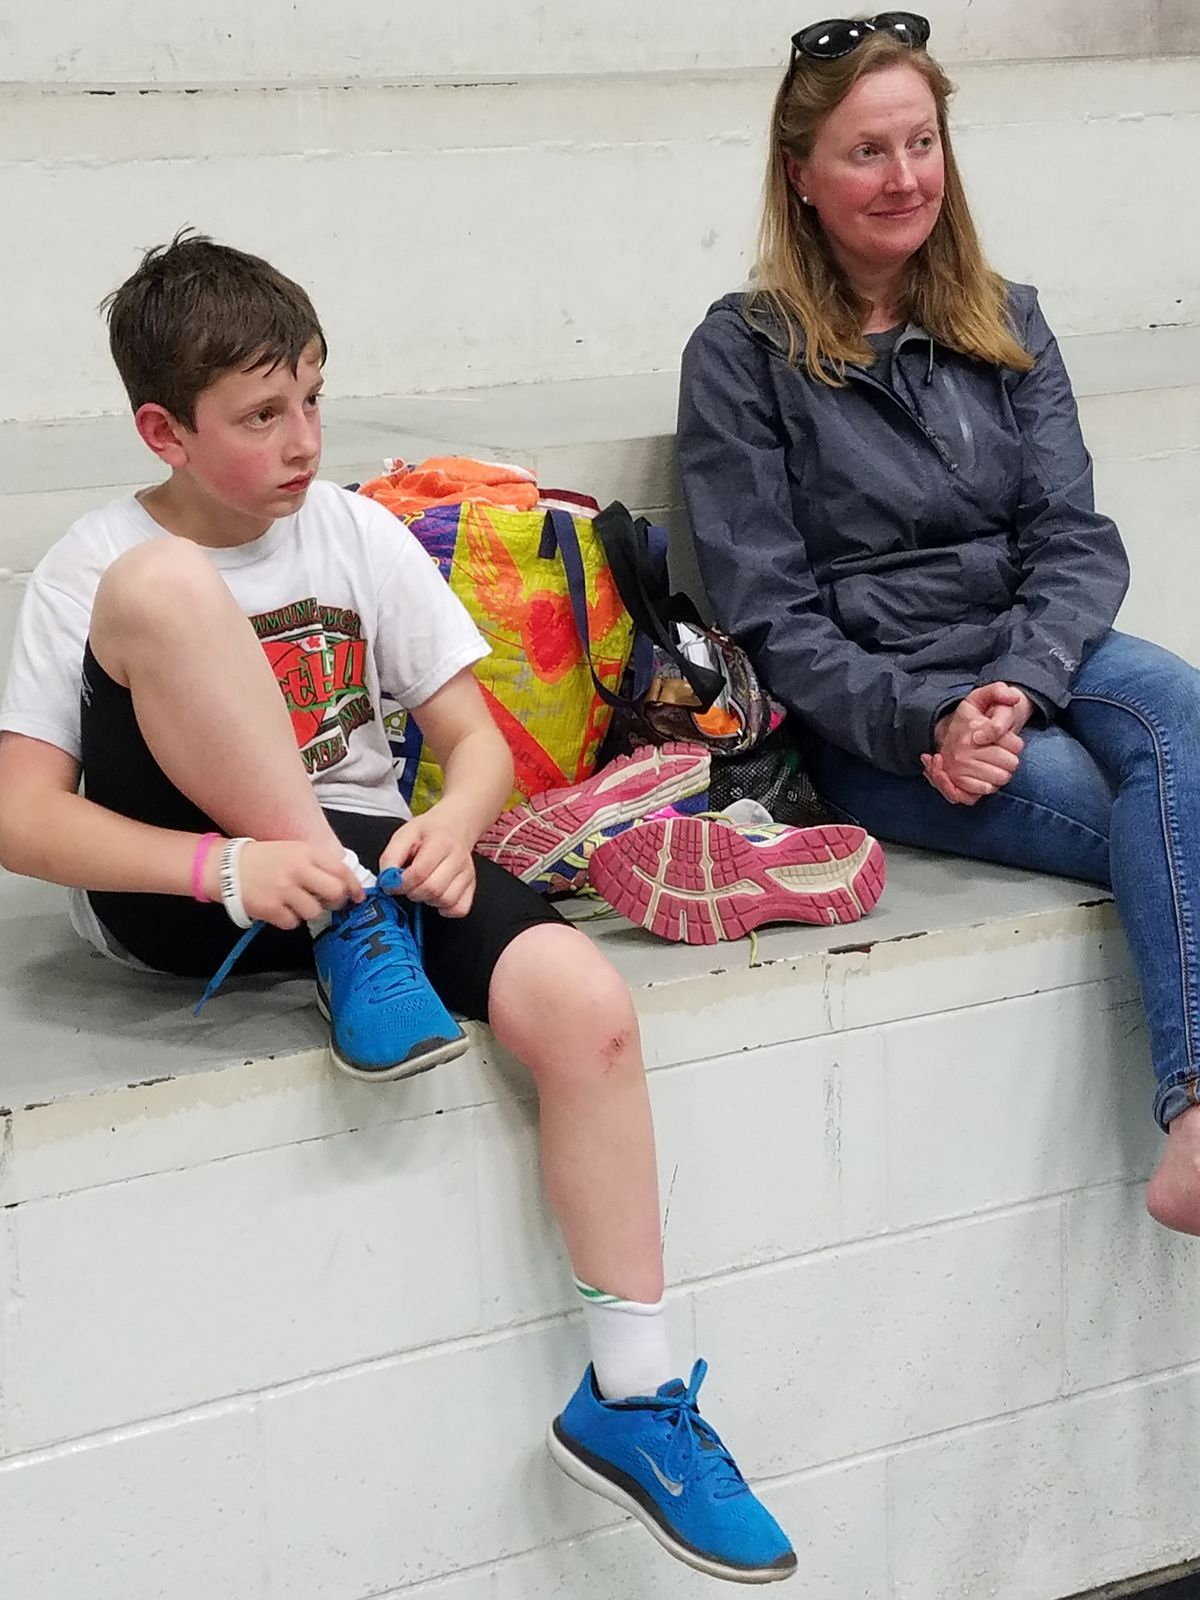 Henry Ash, 9, and his mom Kate Abbott listen to Turnagain Training coach Heather Helzer talk about triathlon strategies after a clinic Saturday at Service High School. Abbott says triathlons have been a fun way for her and Henry to work out together since Abbott is registered for the Gold Nugget Triathlon and Henry is entered in the Trailside and Eagle River triathlons. (Erin Kirkland)